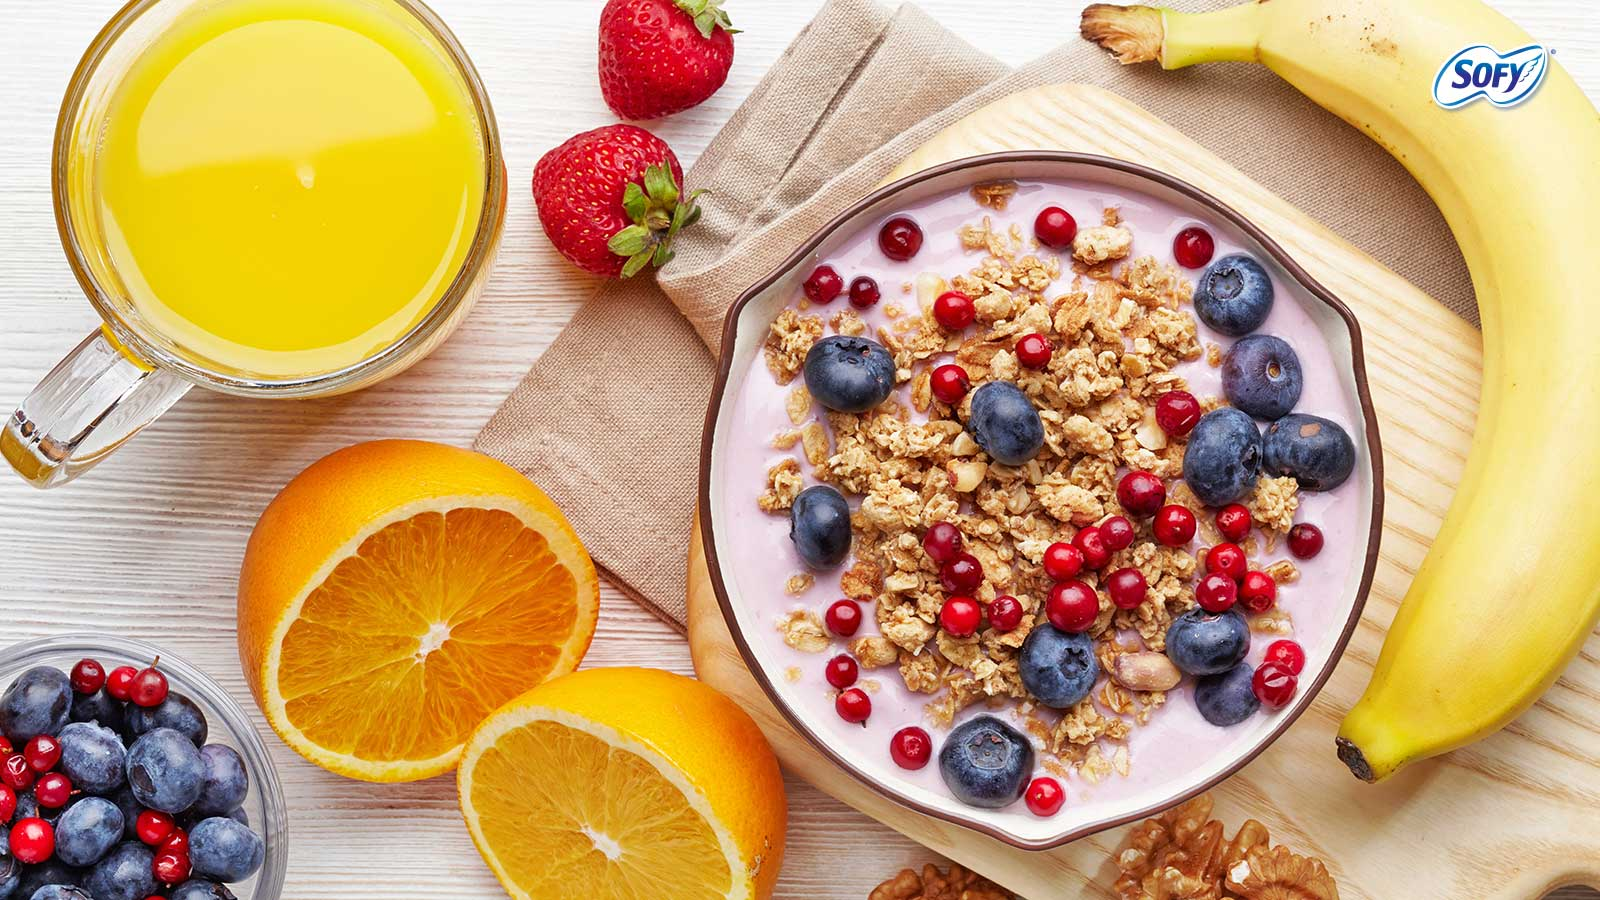 Foods to help ease bloating during periods